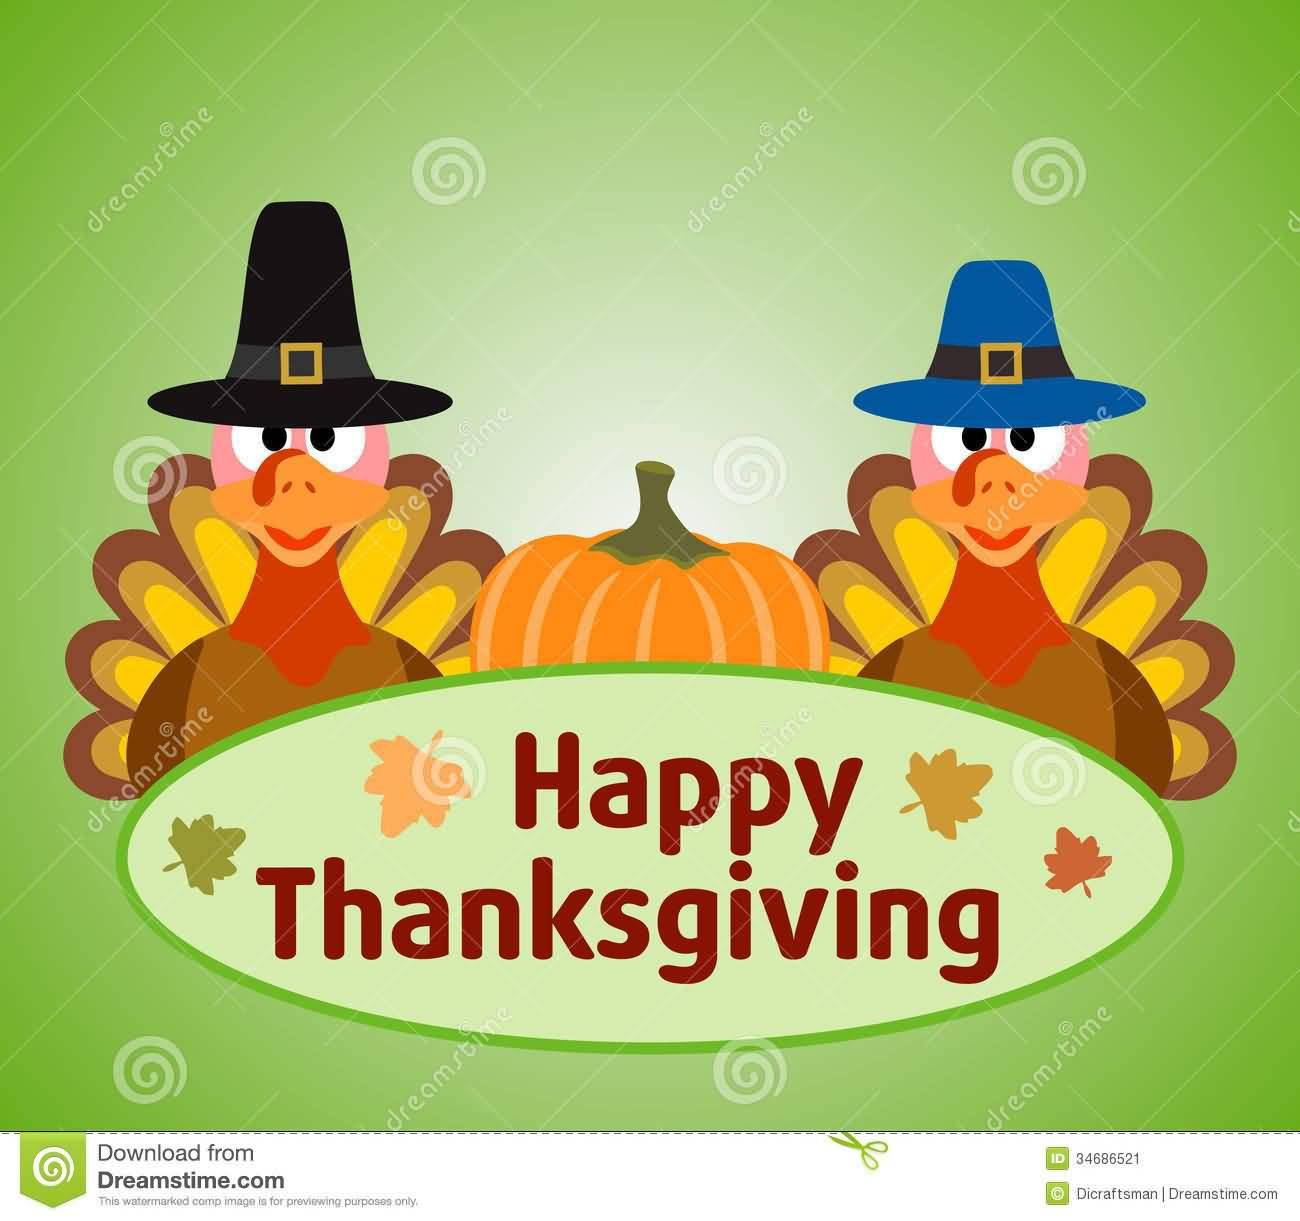 happy thanksgiving clip art - photo #46